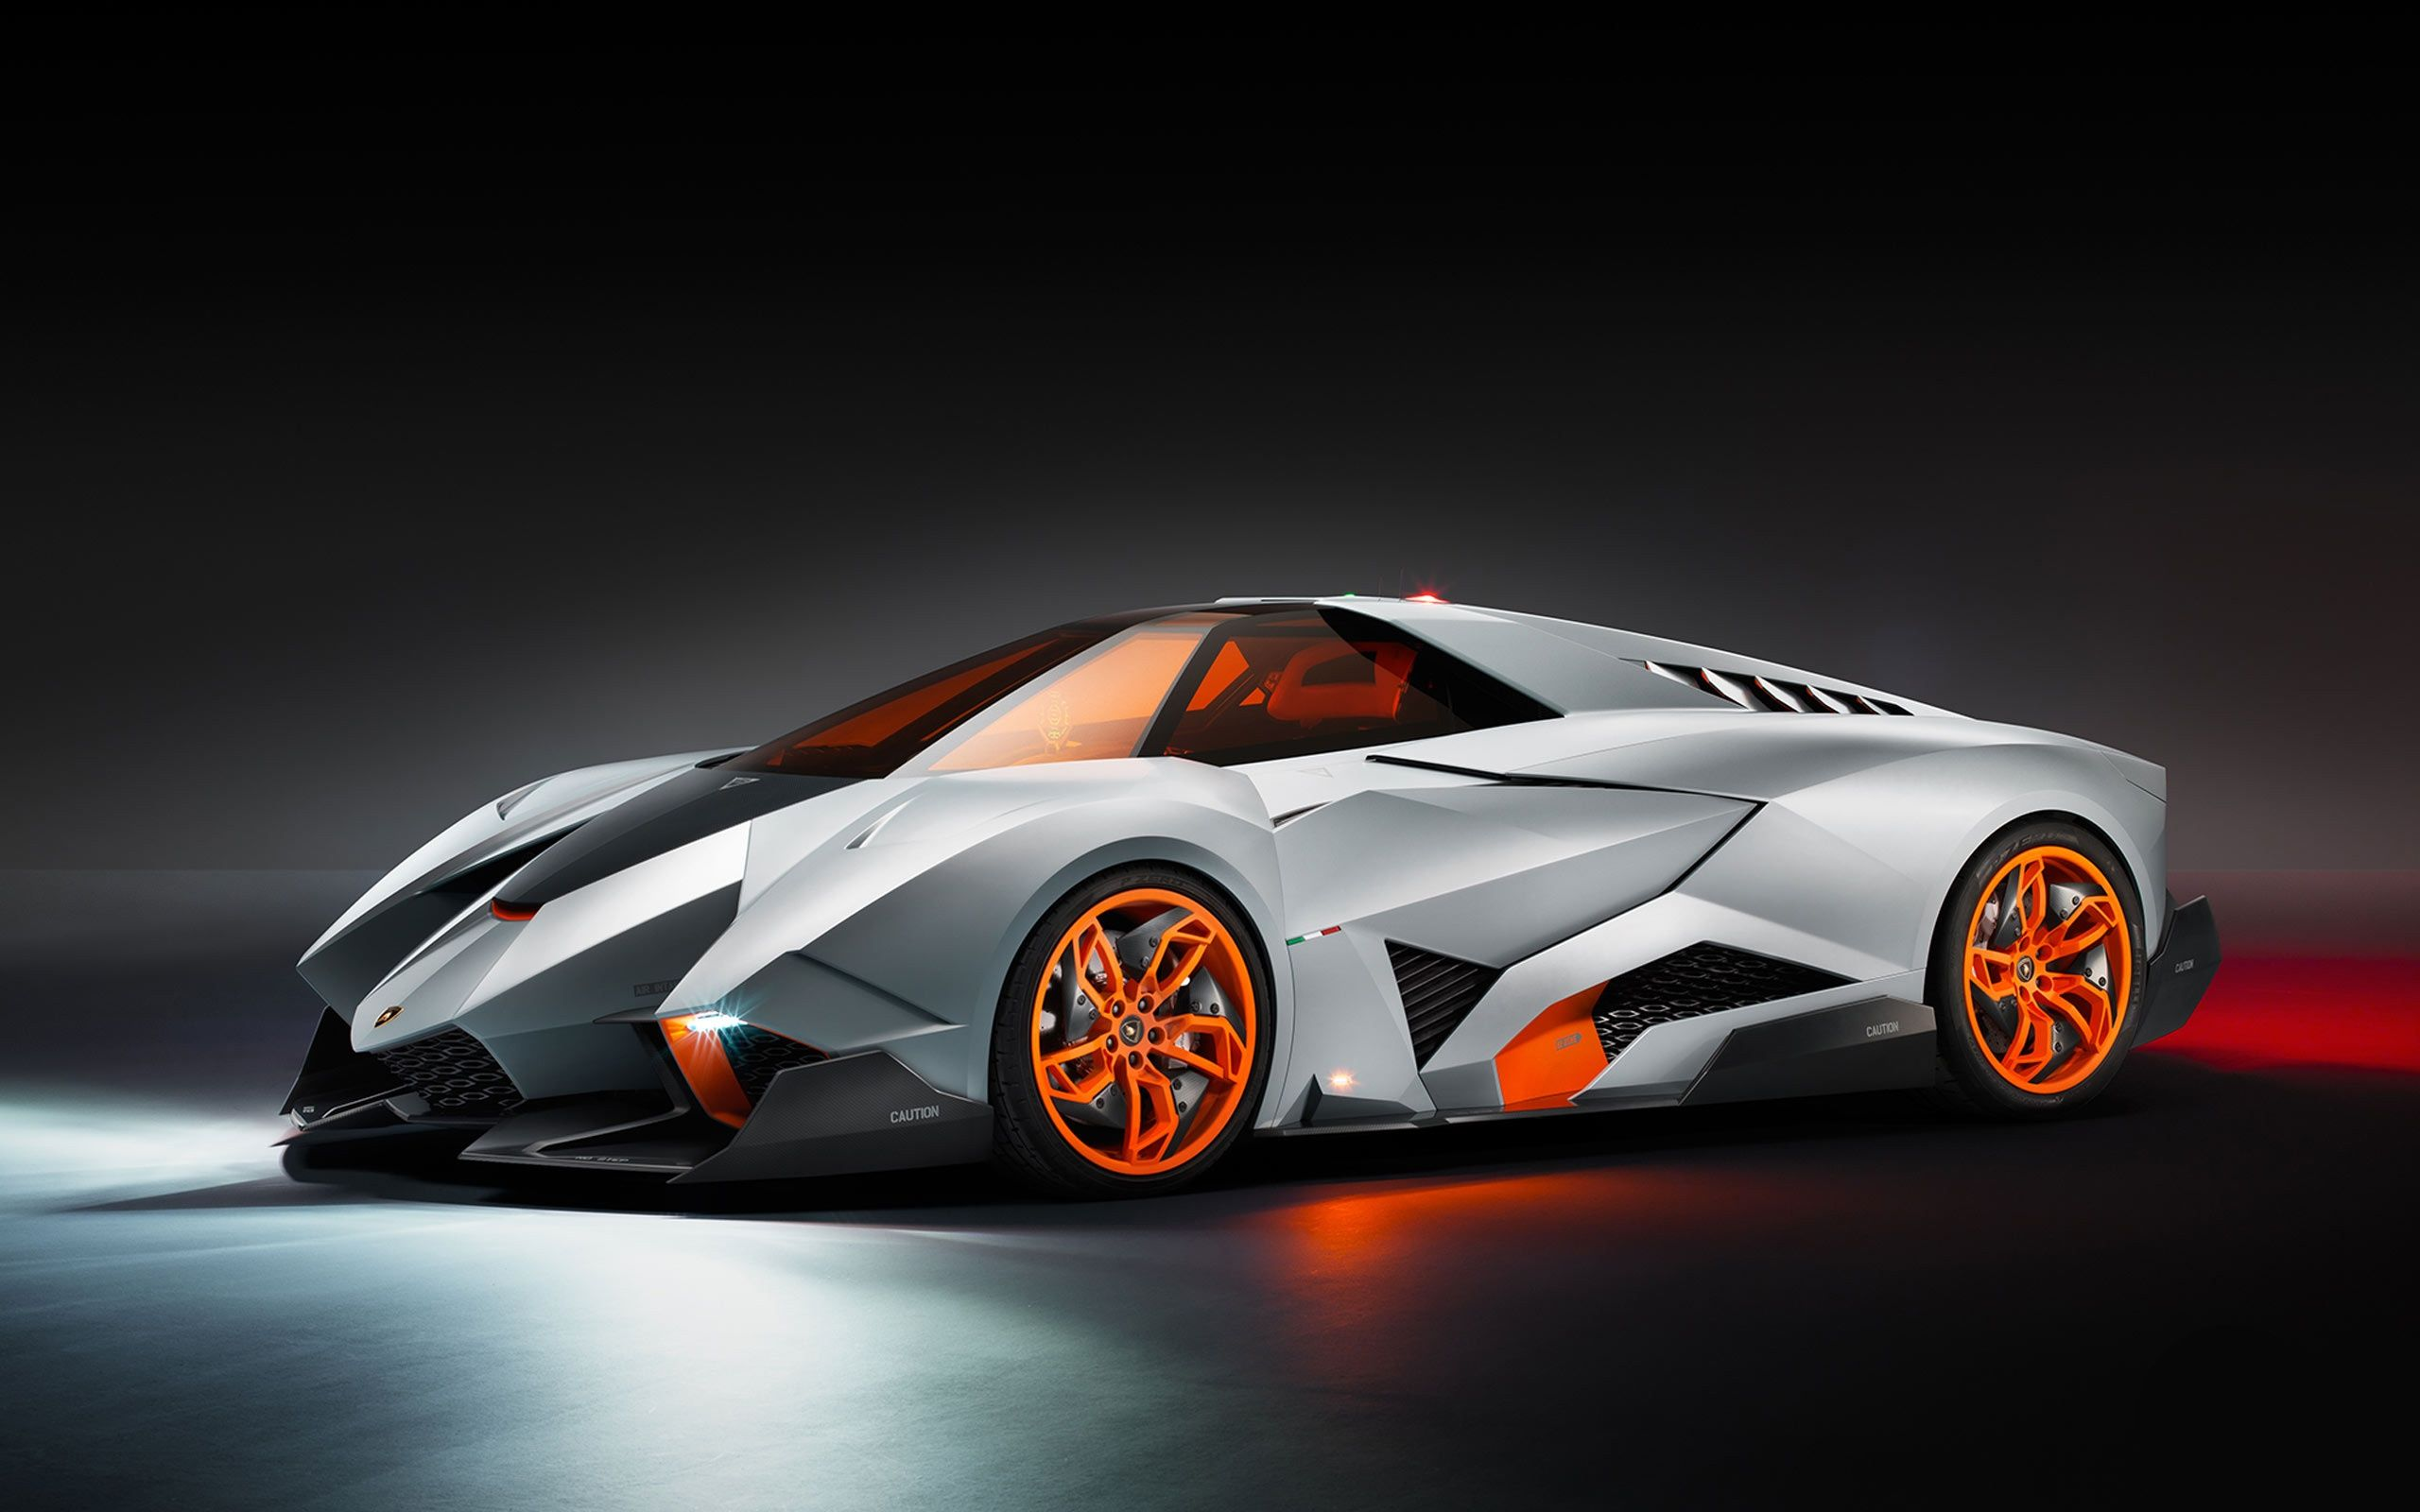 Wallpaper D Cars Wallpapers For Free Download About Weird